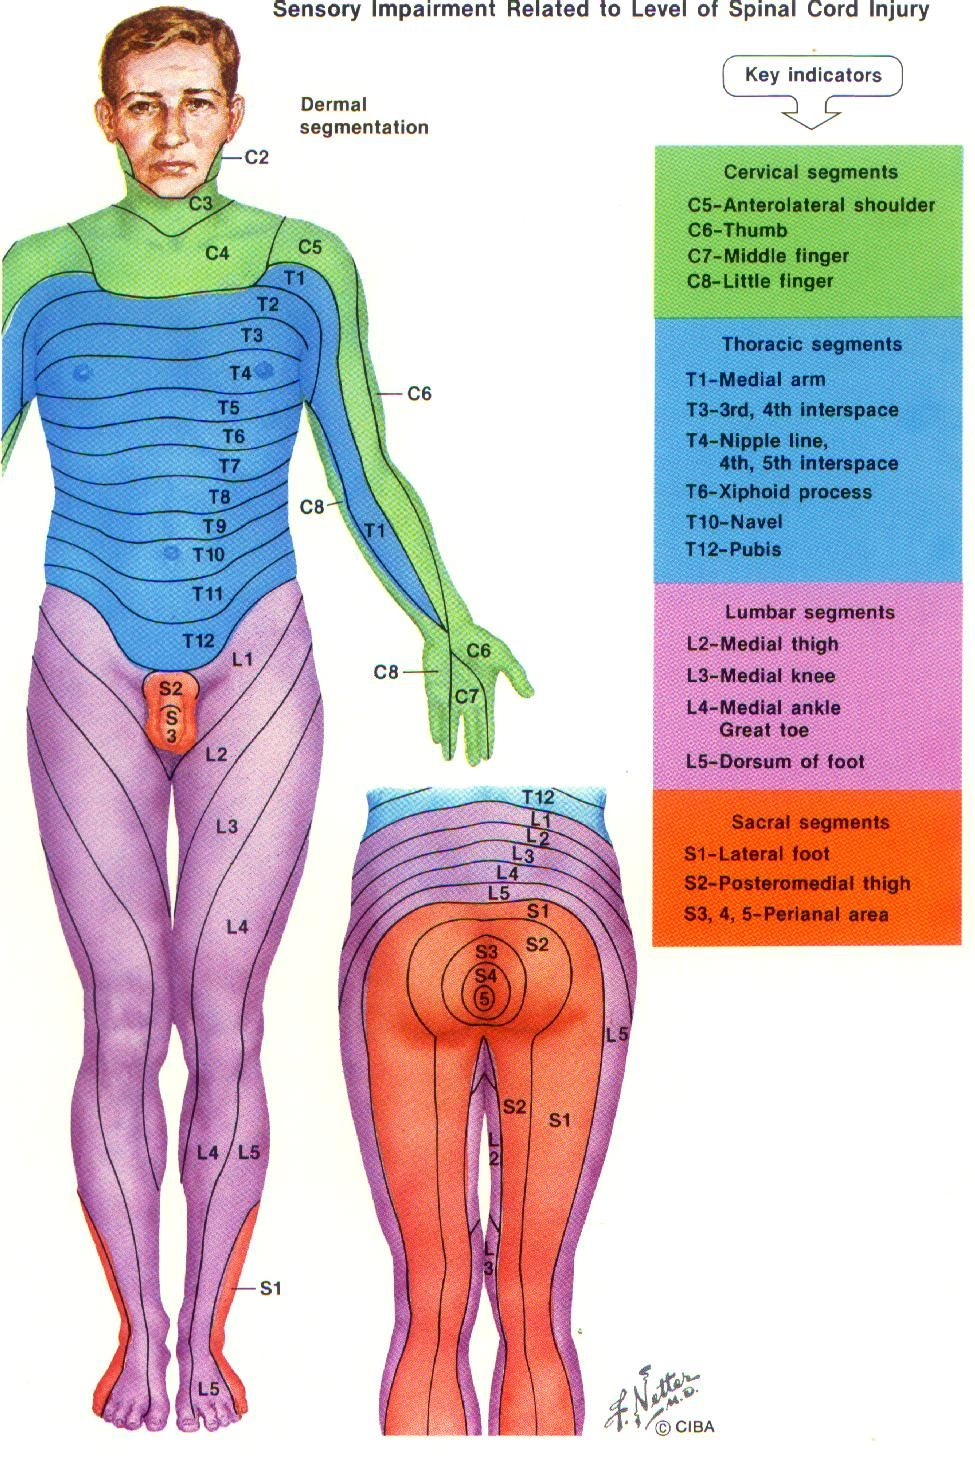 small resolution of dermatome chart with symptoms more pain first thing in the morning or after sitting a long time is